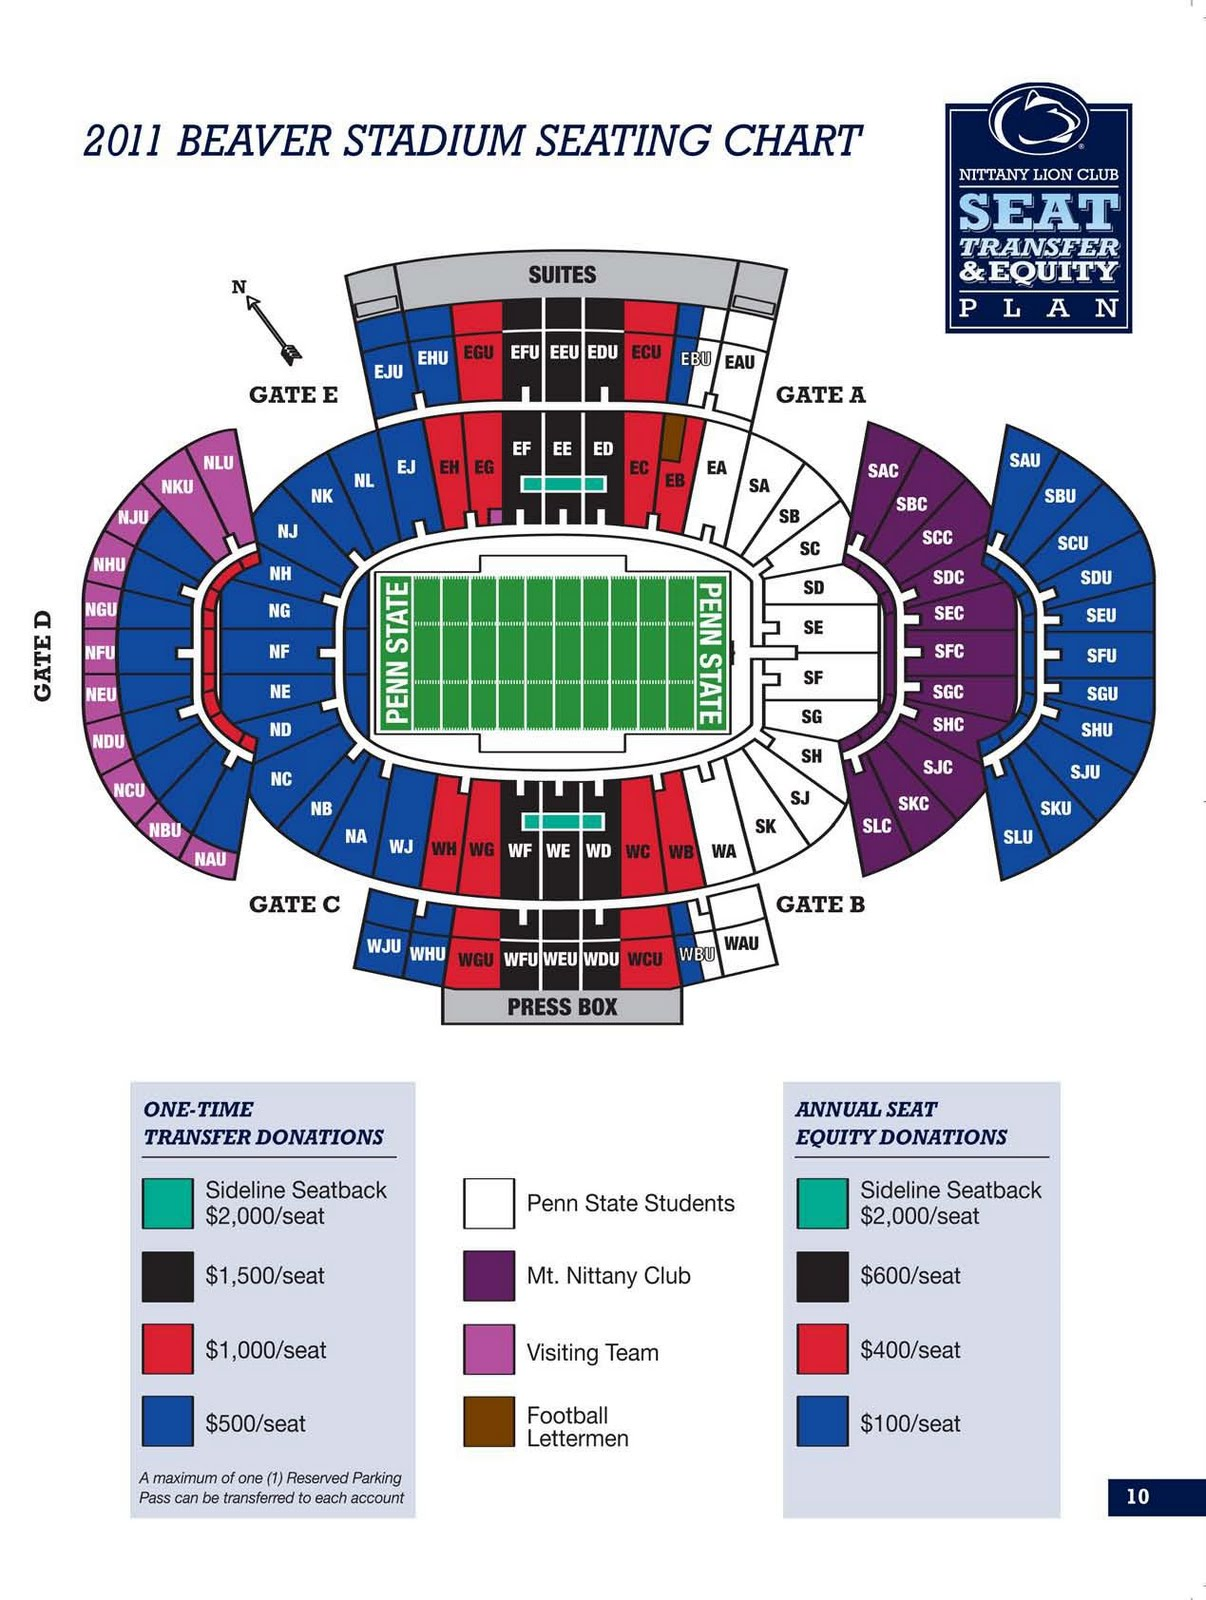 Beaver Stadium 2011 seating chart released. By Mike